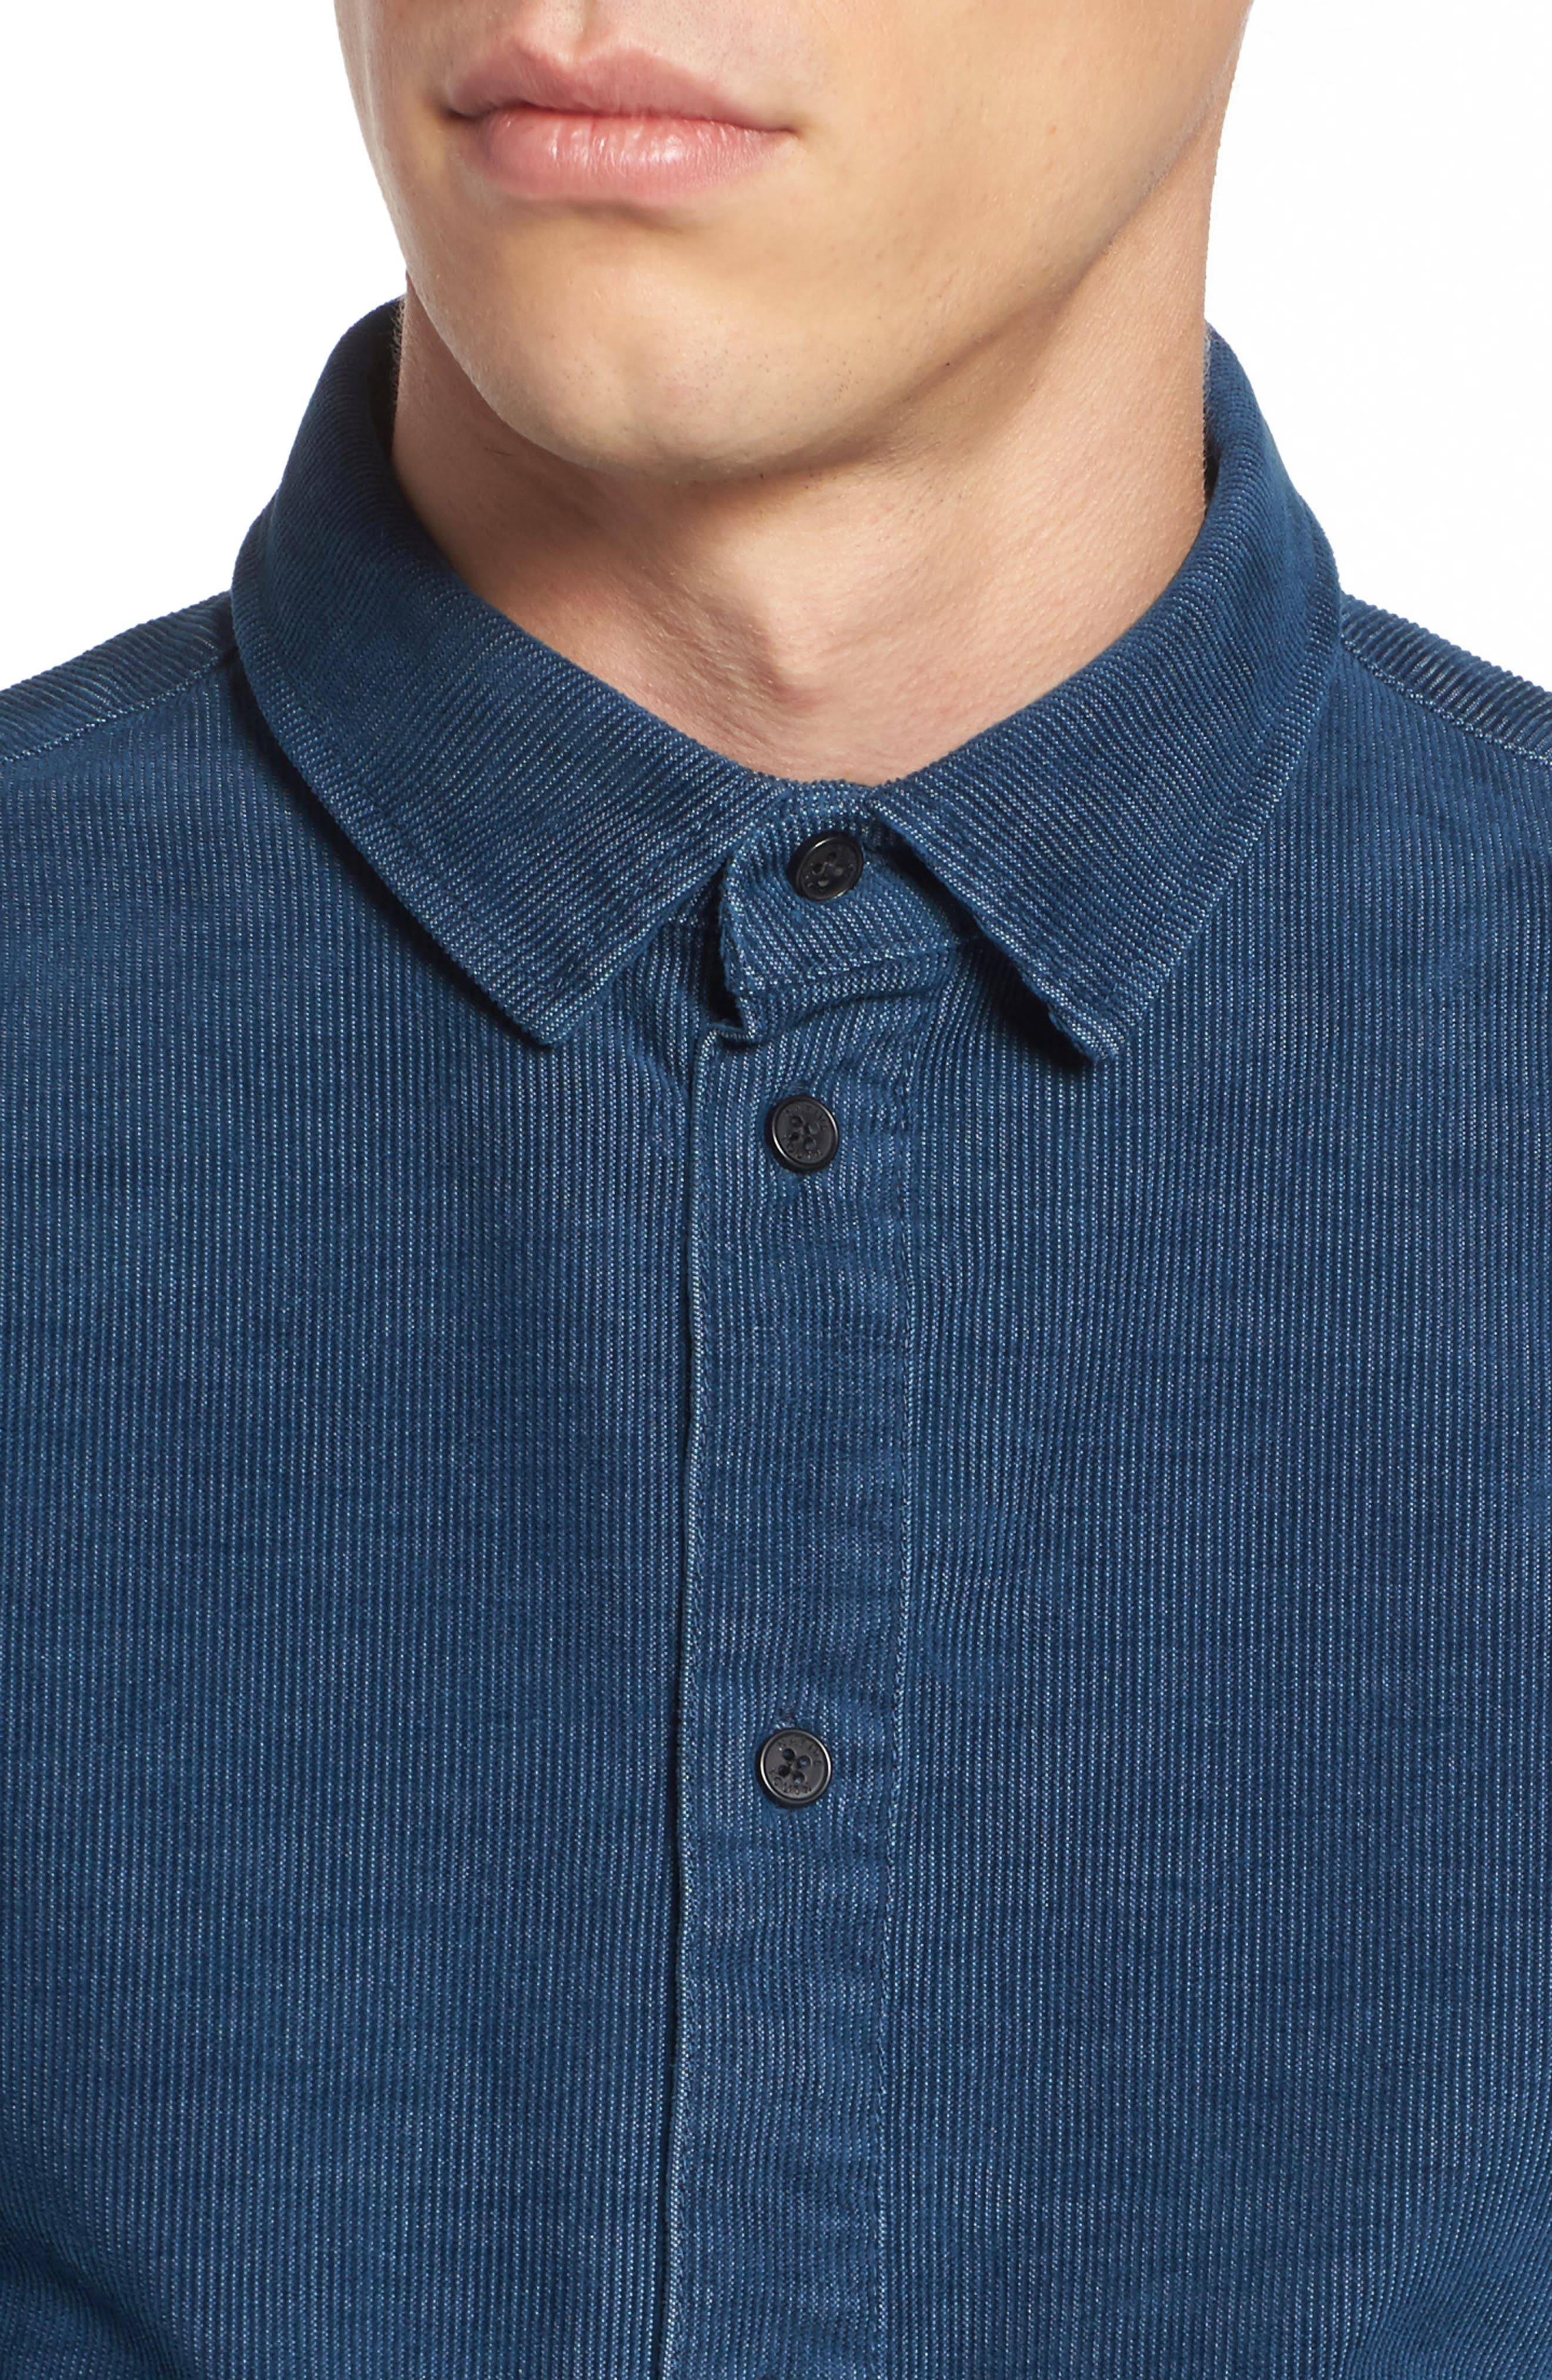 Cheriton Corduroy Shirt,                             Alternate thumbnail 4, color,                             400